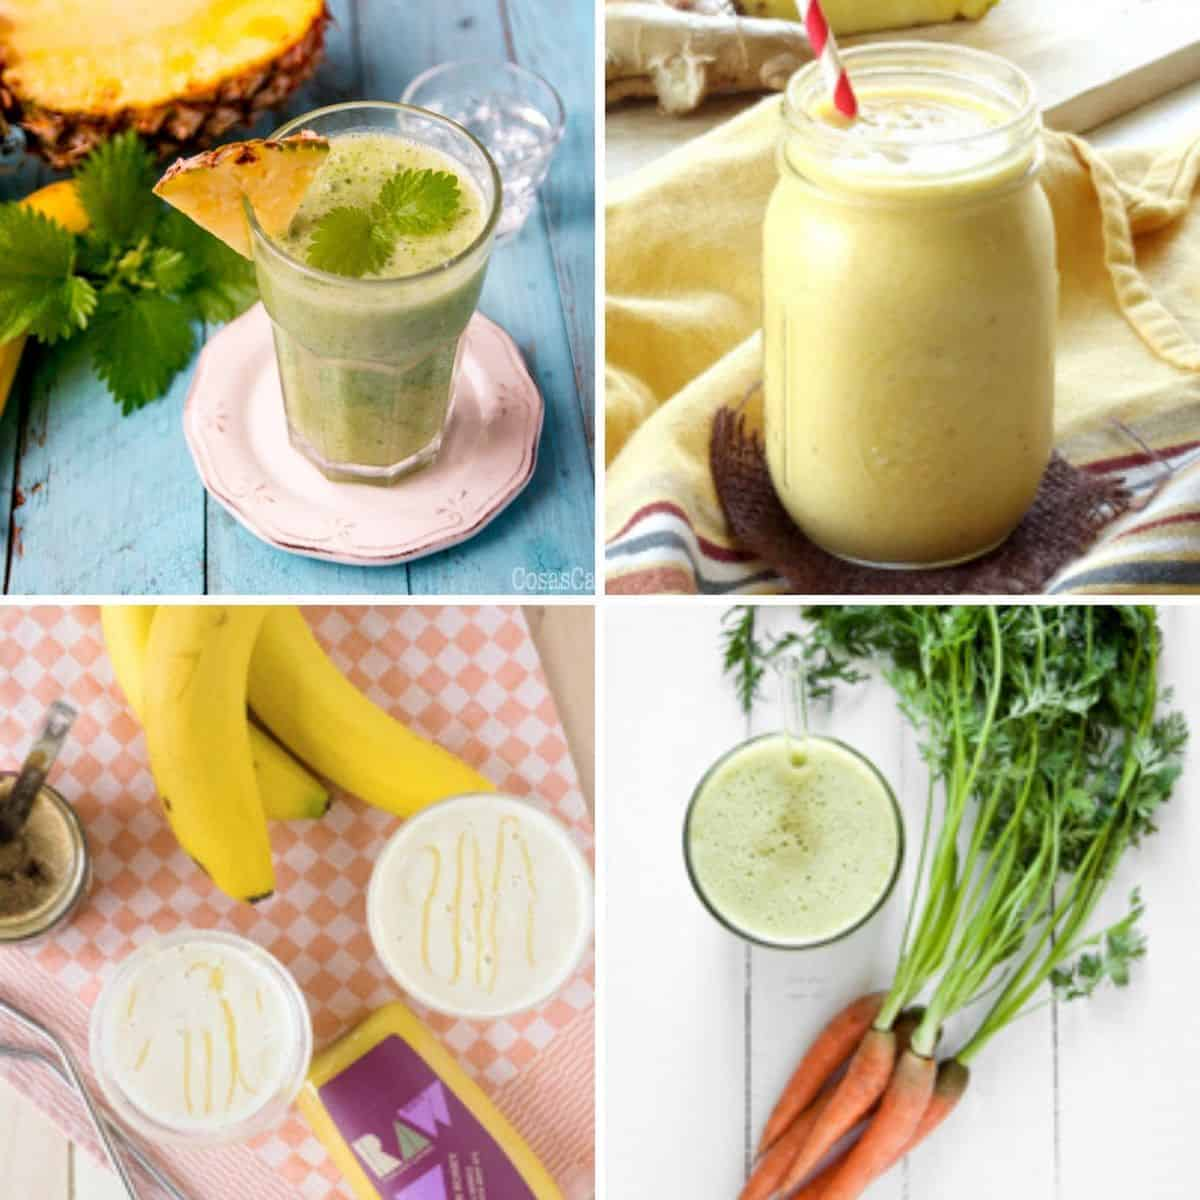 Collage of 4 different smoothies with unusual, unexpected ingredients.